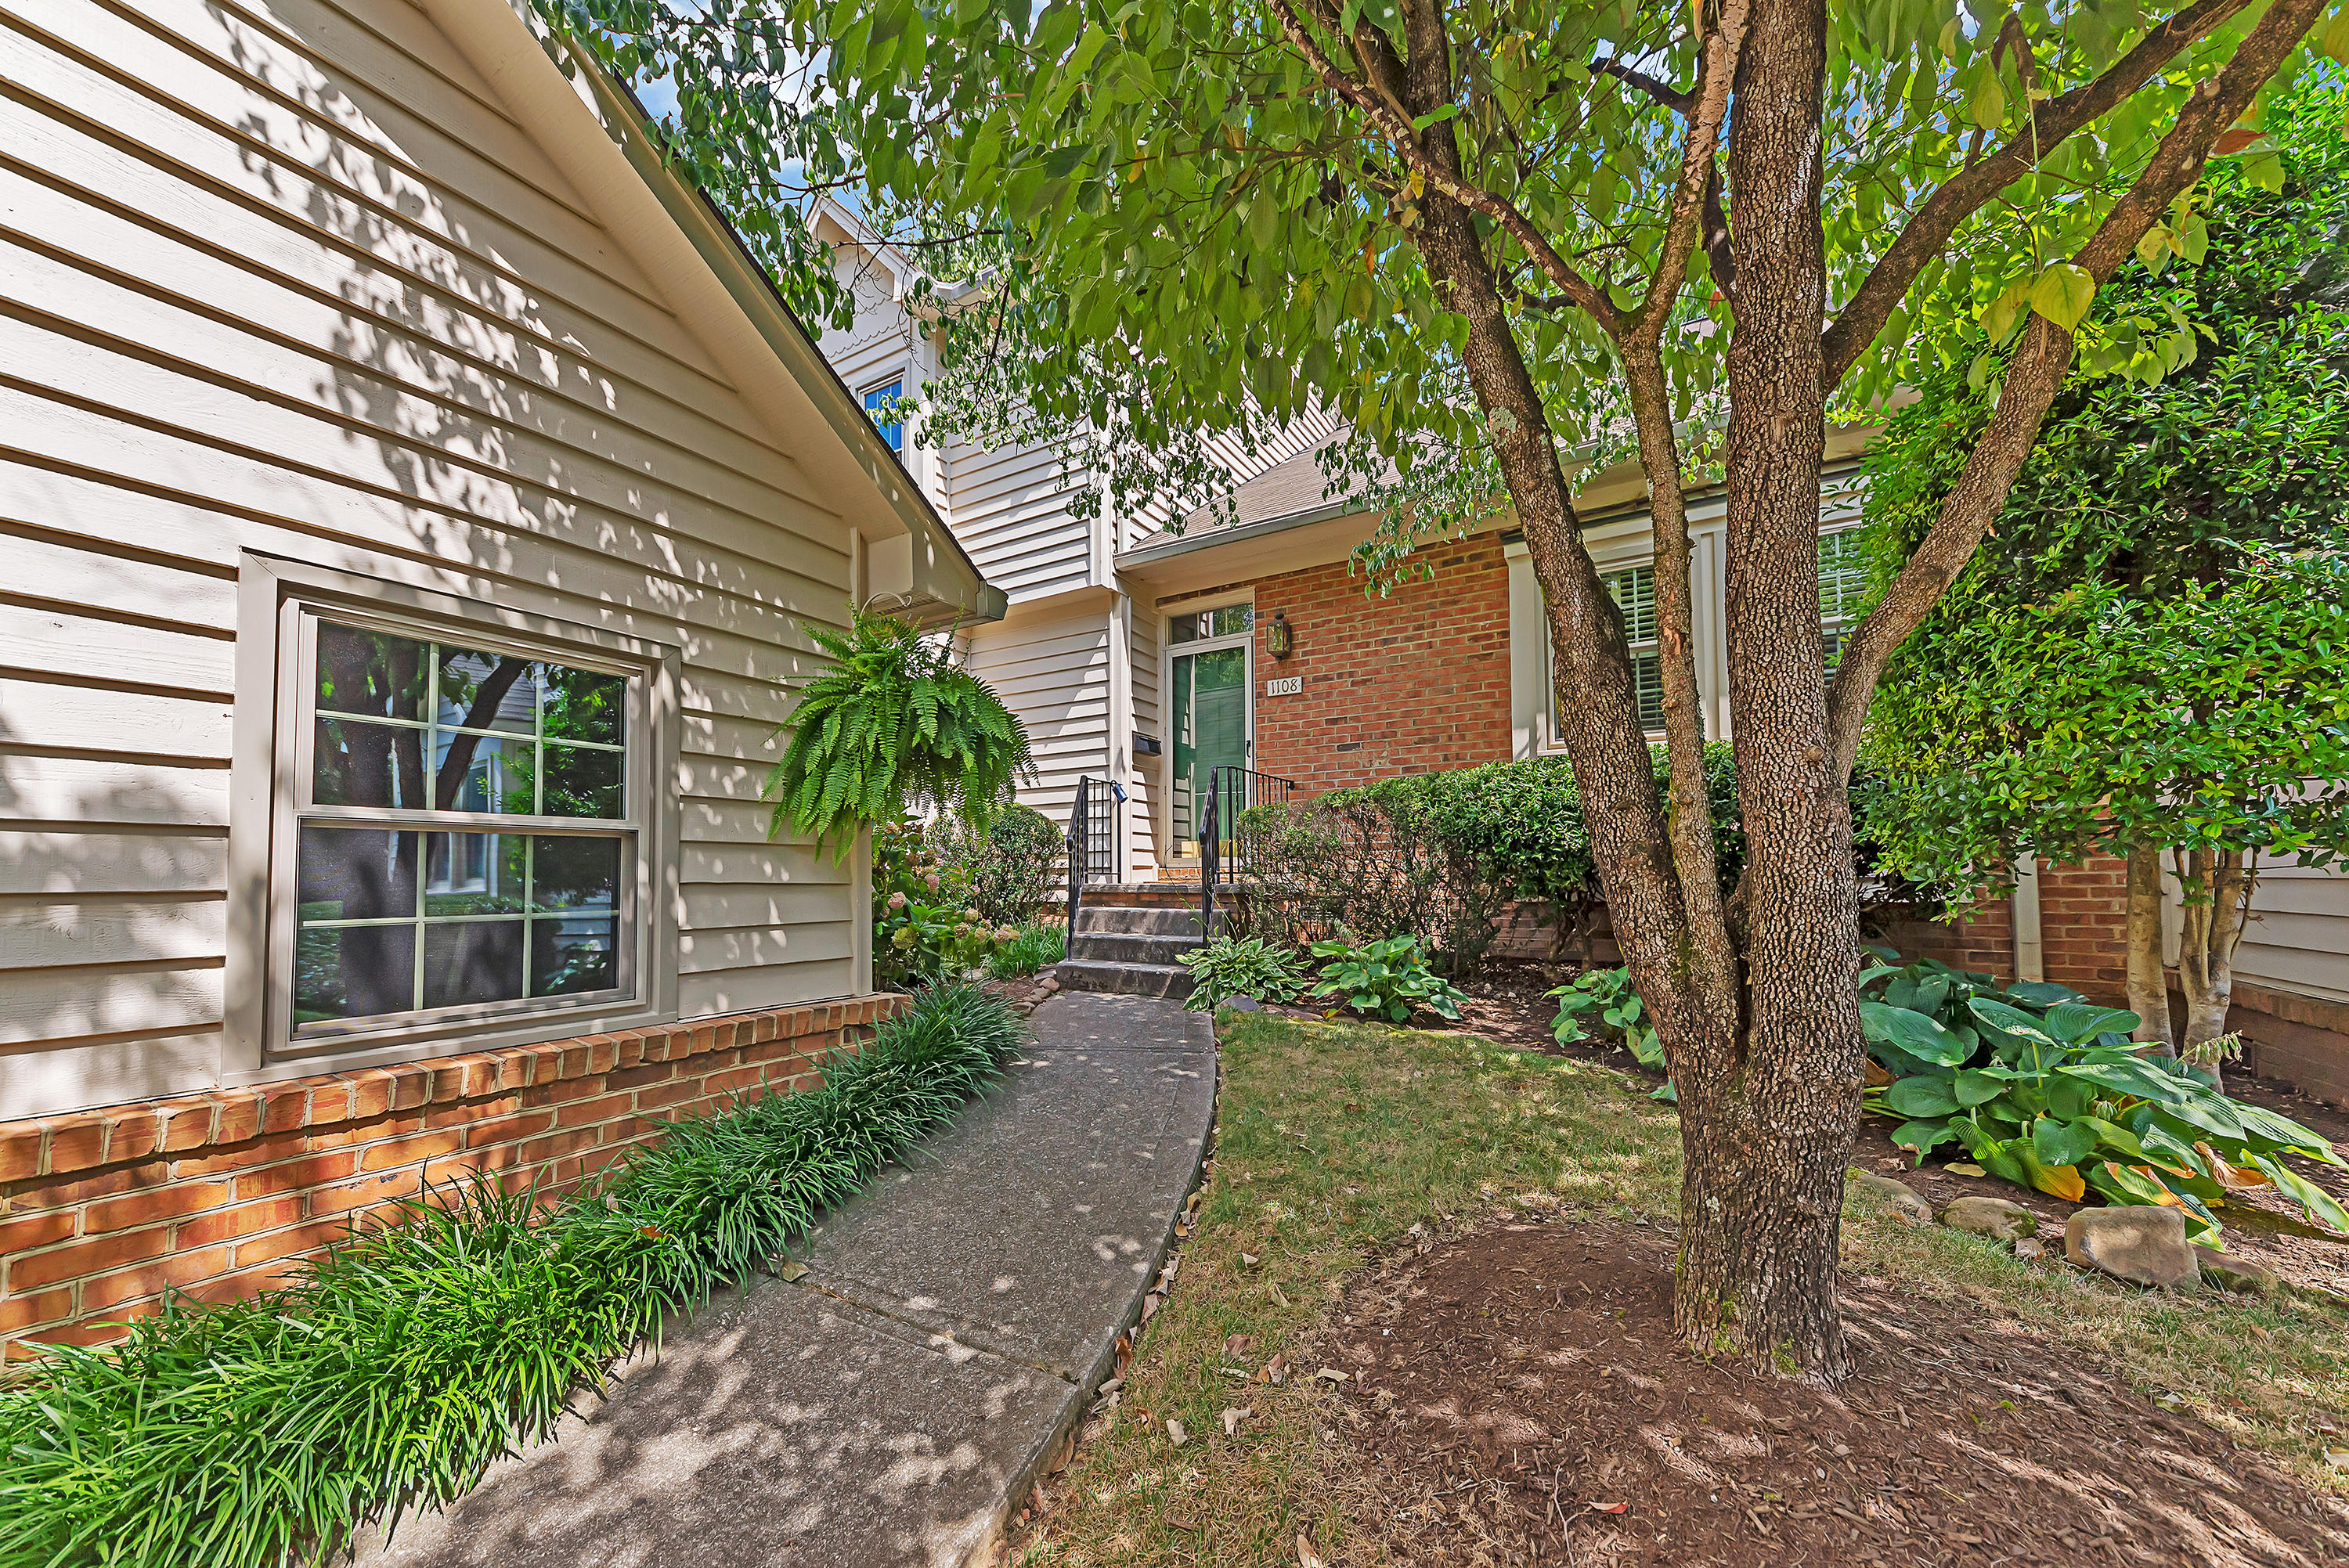 1108 GREYWOOD DRIVE, KNOXVILLE, TN 37923 - The Hughes Properties Realty  Executives Associates